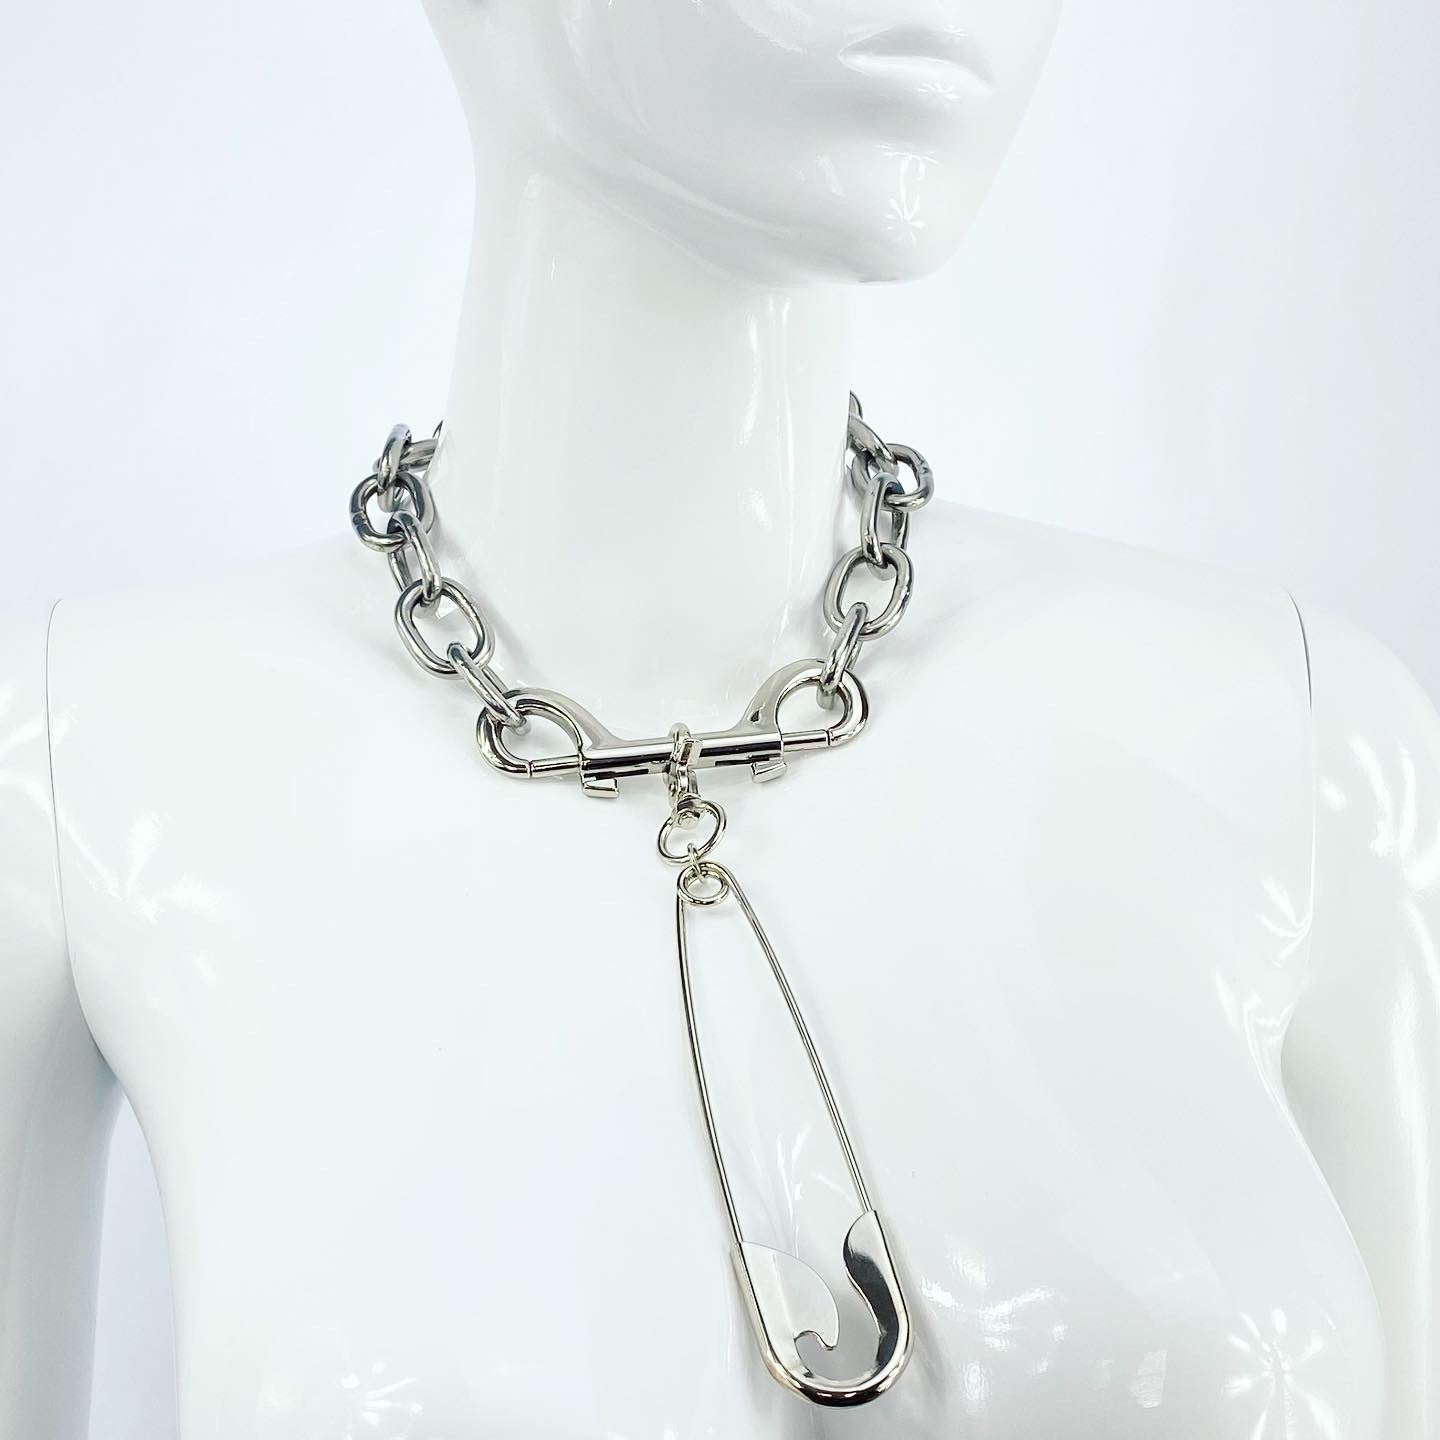 INDUSTRIAL DOUBLE TRIGGER XXXL SAFETY PIN CHAIN NECKLACE IN STAINLESS STEEL